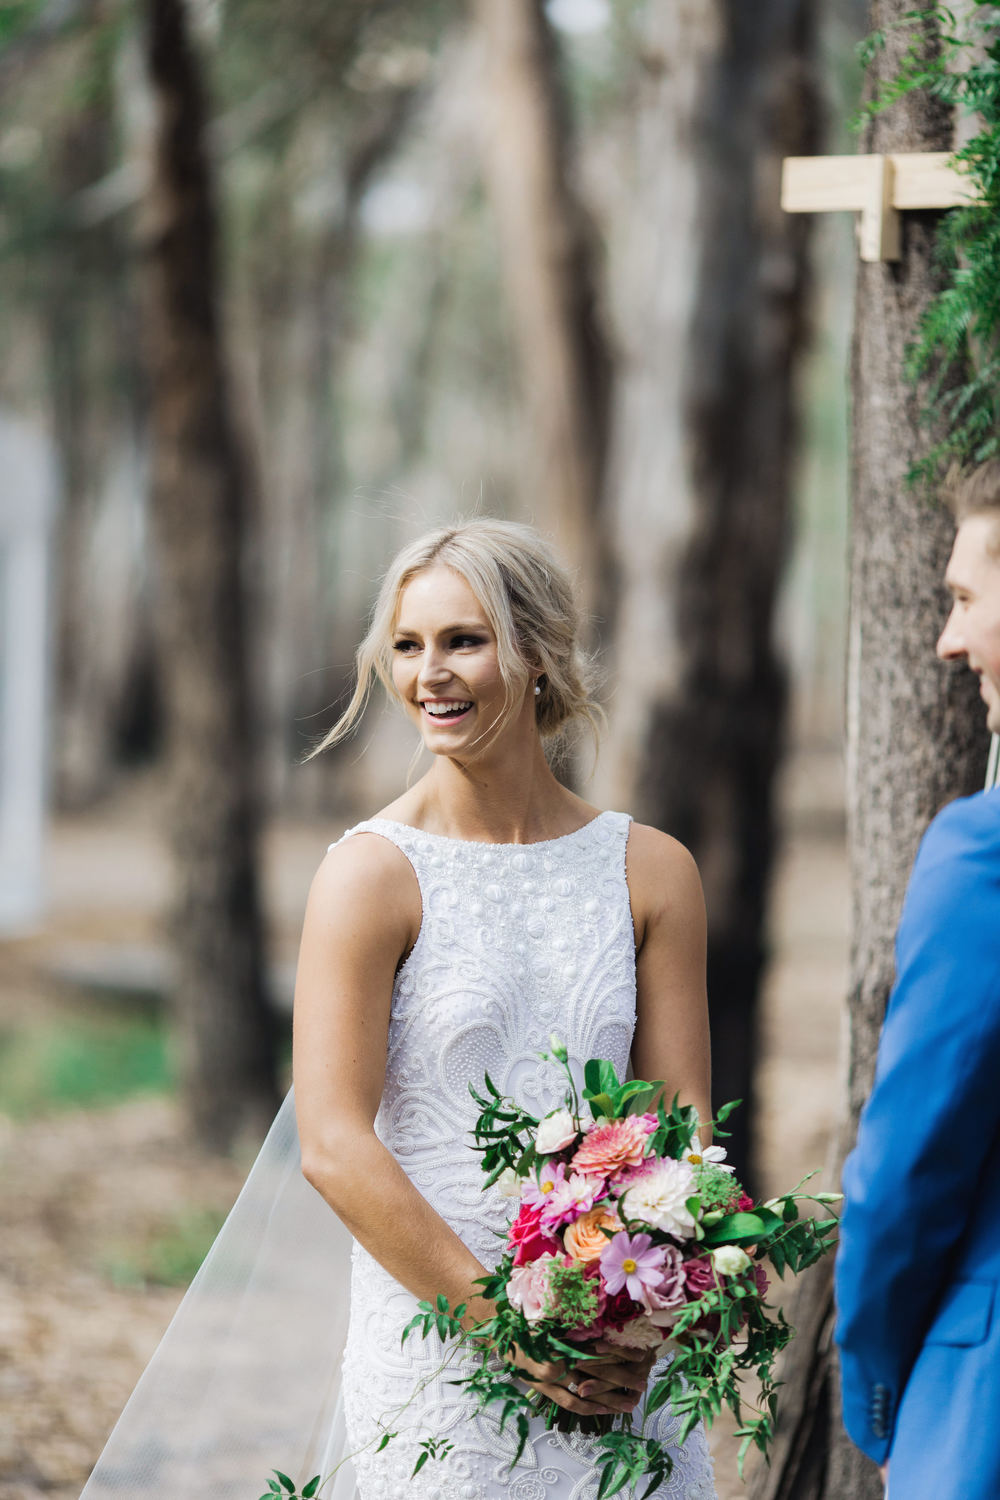 JuliaArchibald_WeddingPhotography_Melbourne_Australia_18.jpg